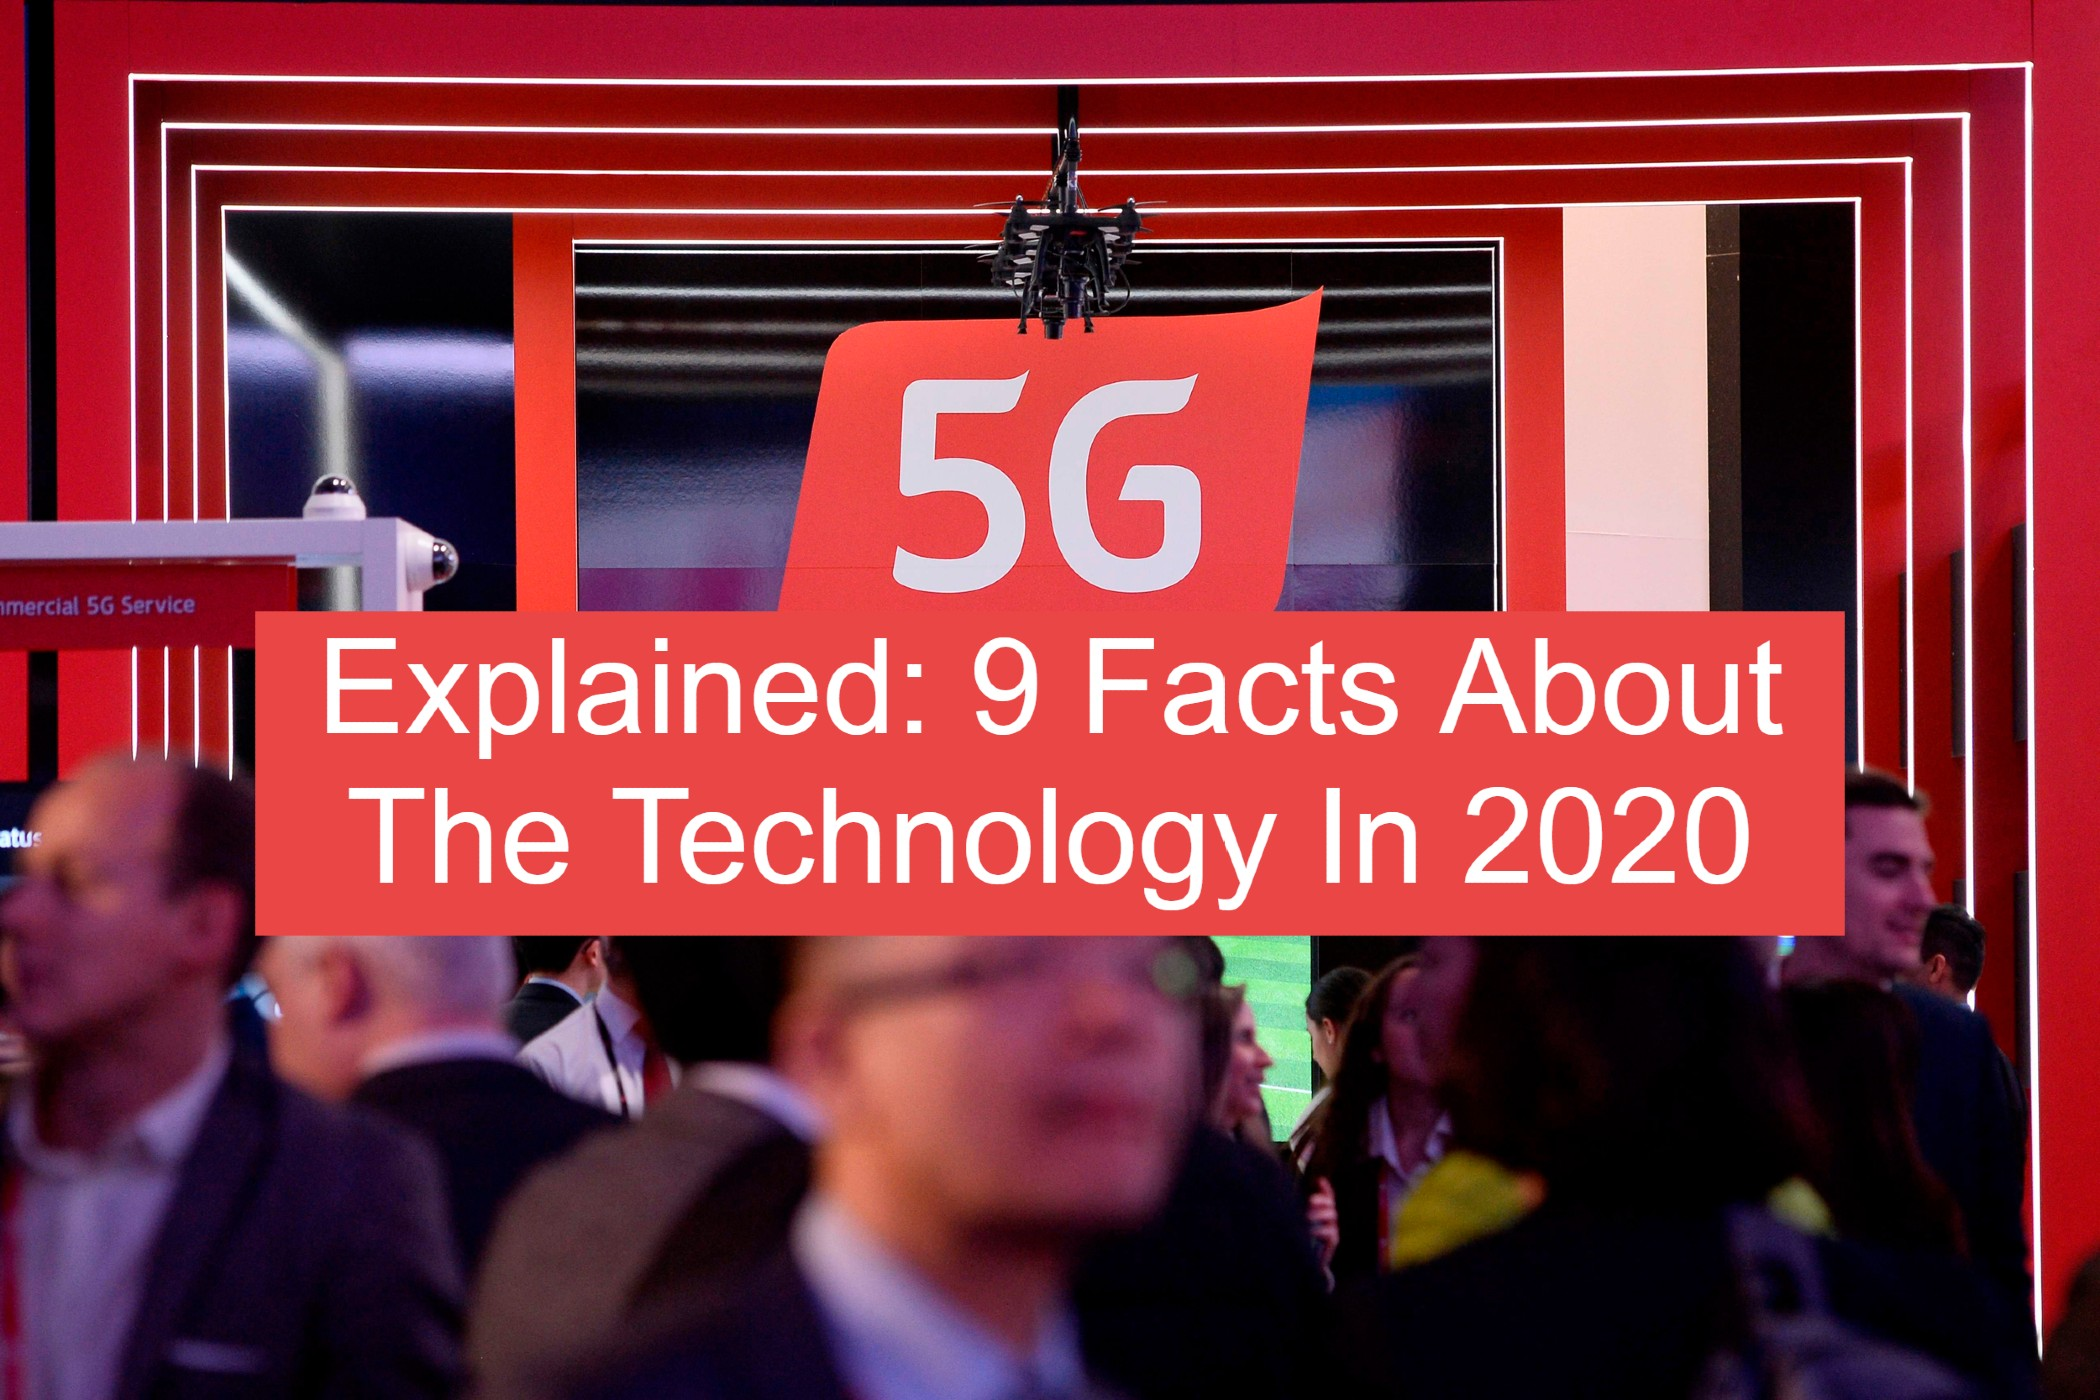 5G Explained: 9 Facts About The Technology In 2020